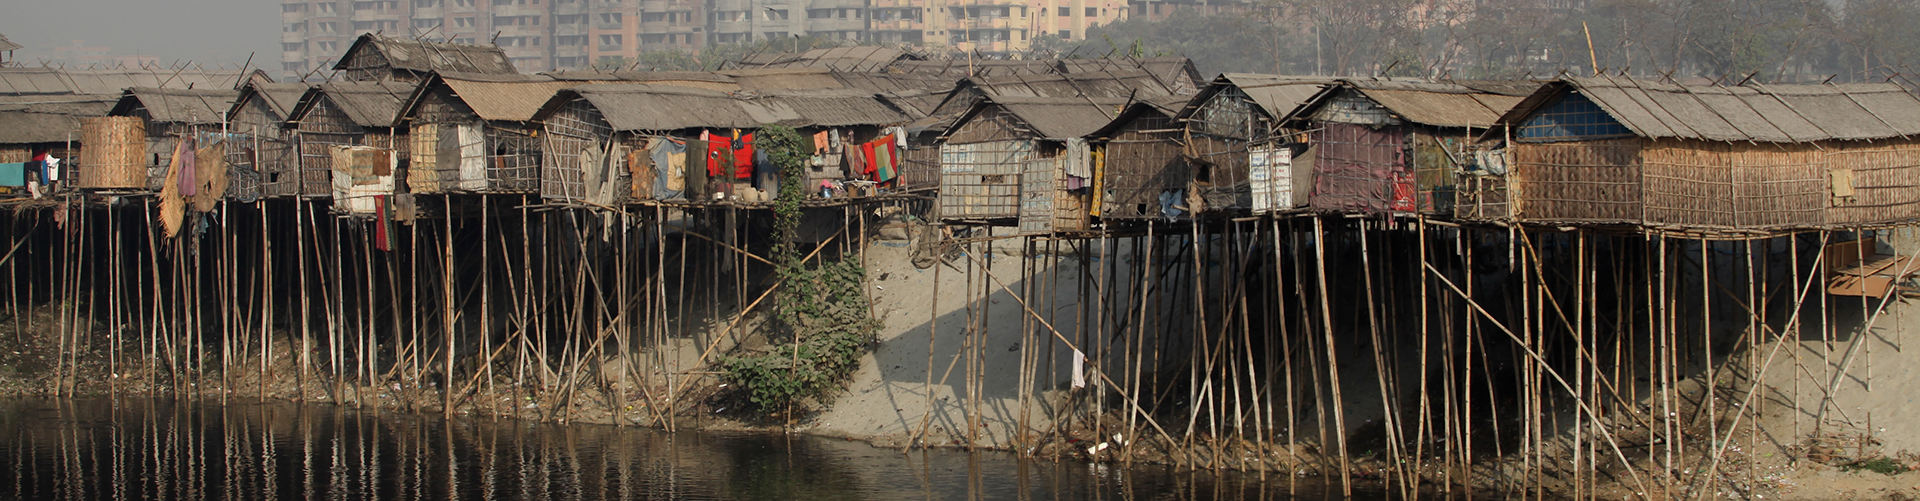 Shanties in front of high rise buildings at Hazaribagh in Dhaka © Abir Abdullah / ADB